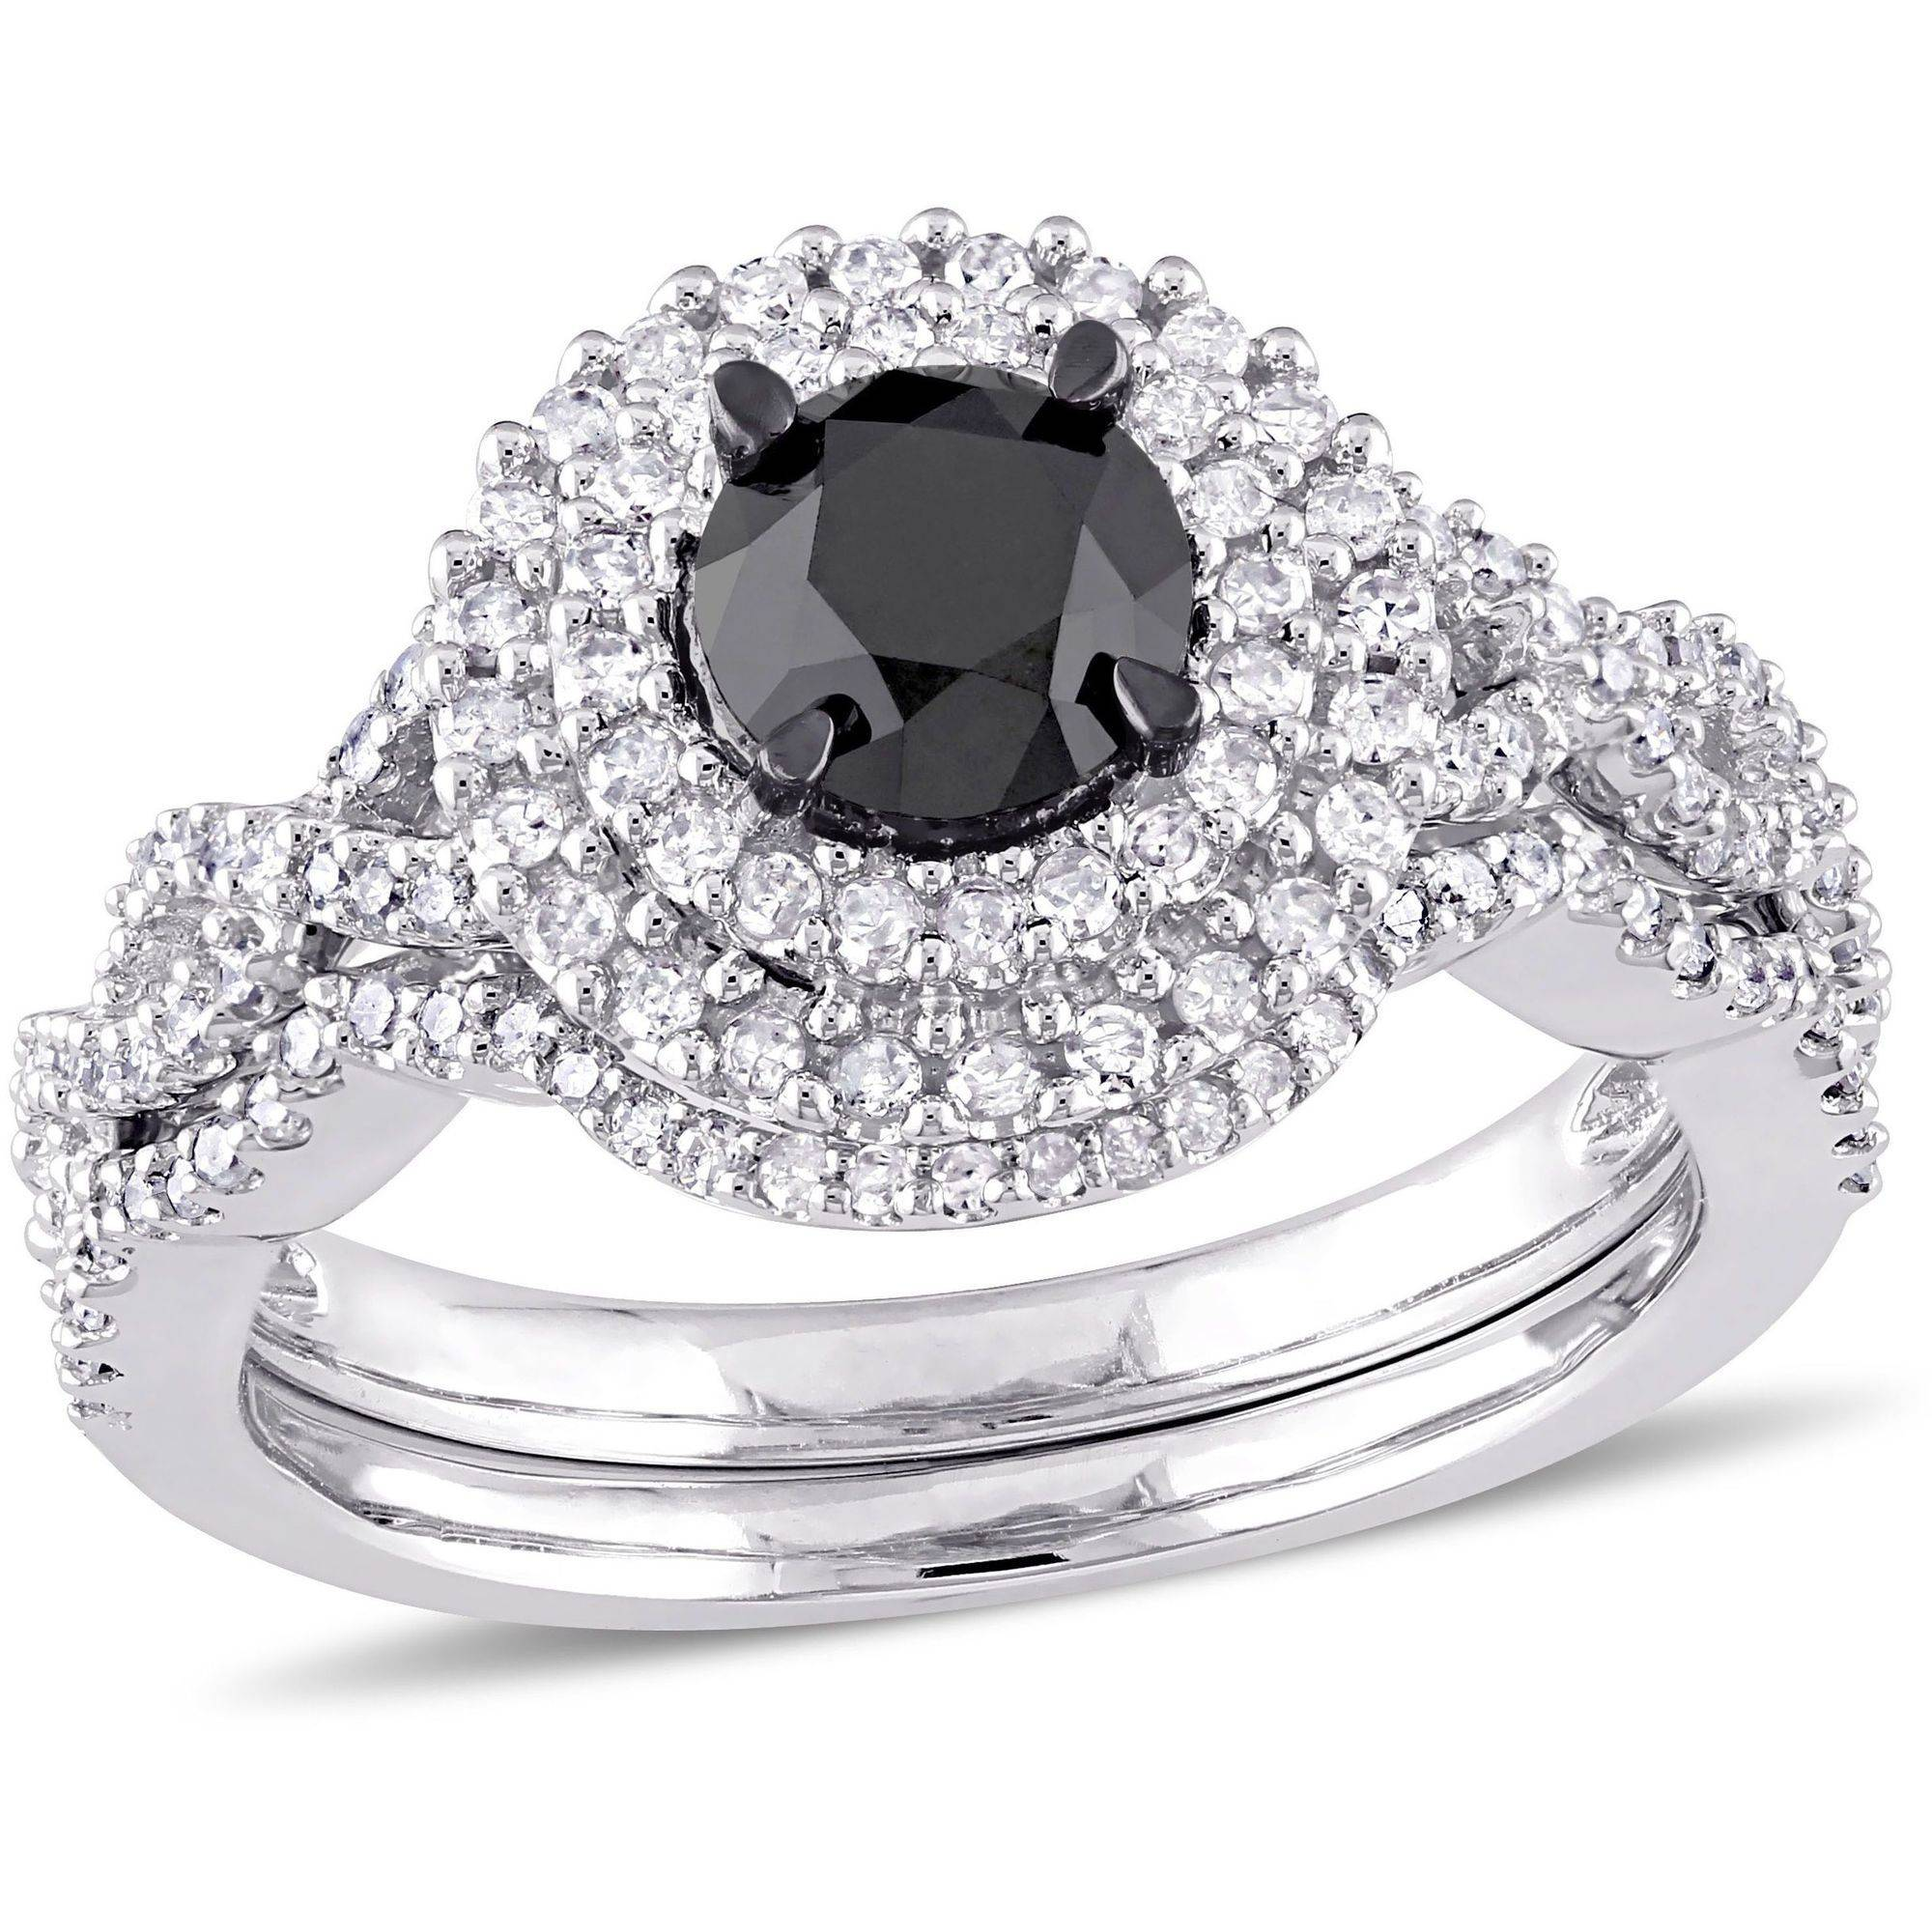 1-1/2 Carat T.W. Black and White Diamond 10kt White Gold Double-Halo Infinity Bridal Set